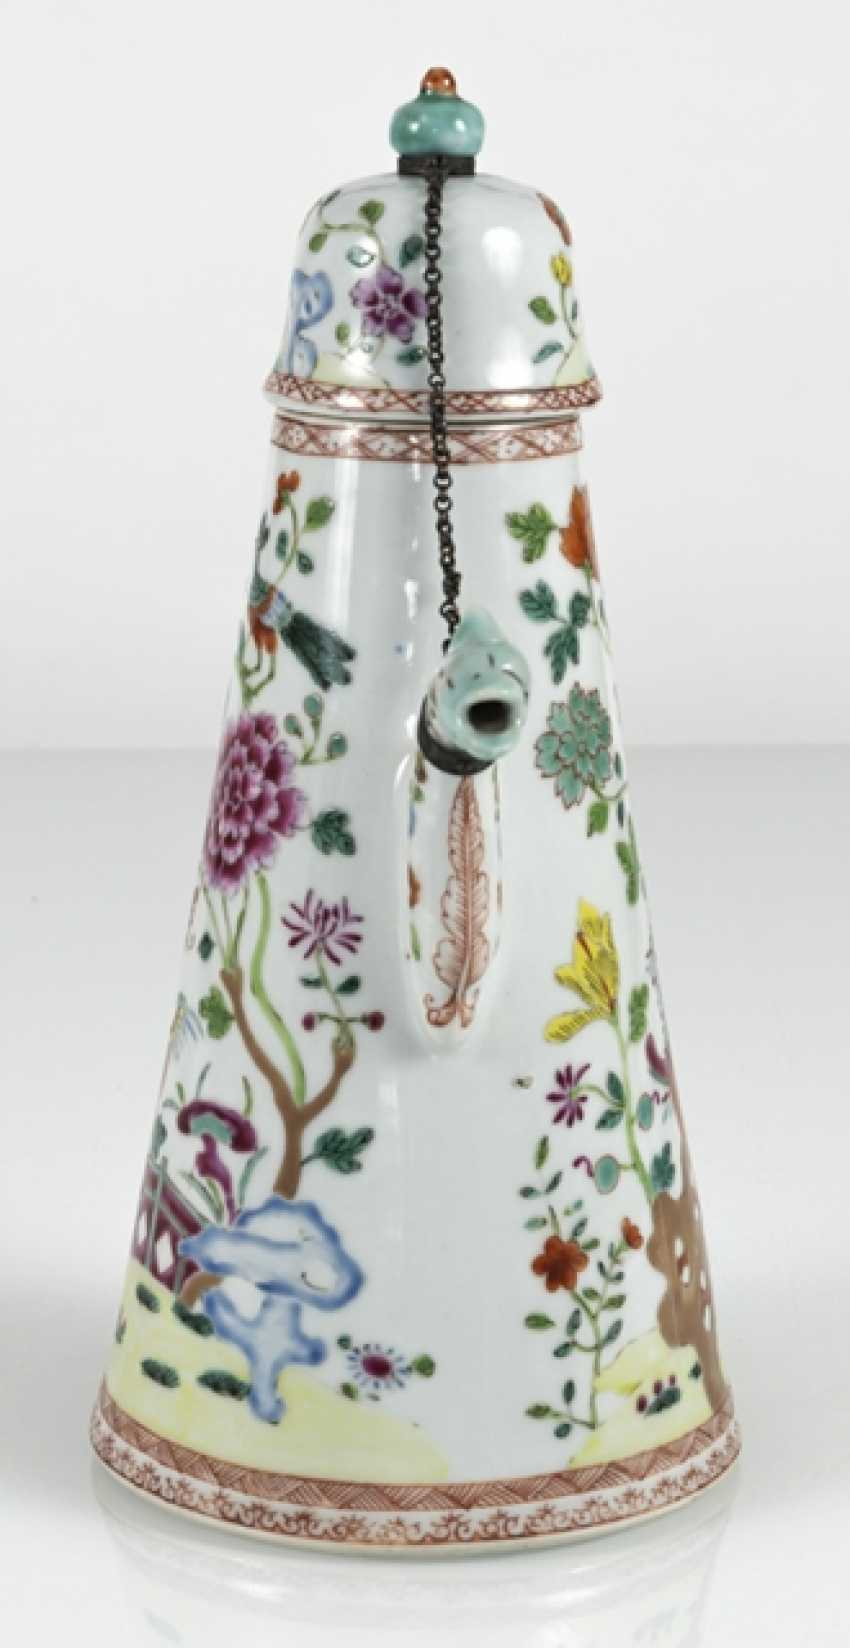 Cone-shaped porcelain teapot with floral decor in the colors of the Famille rose - photo 3